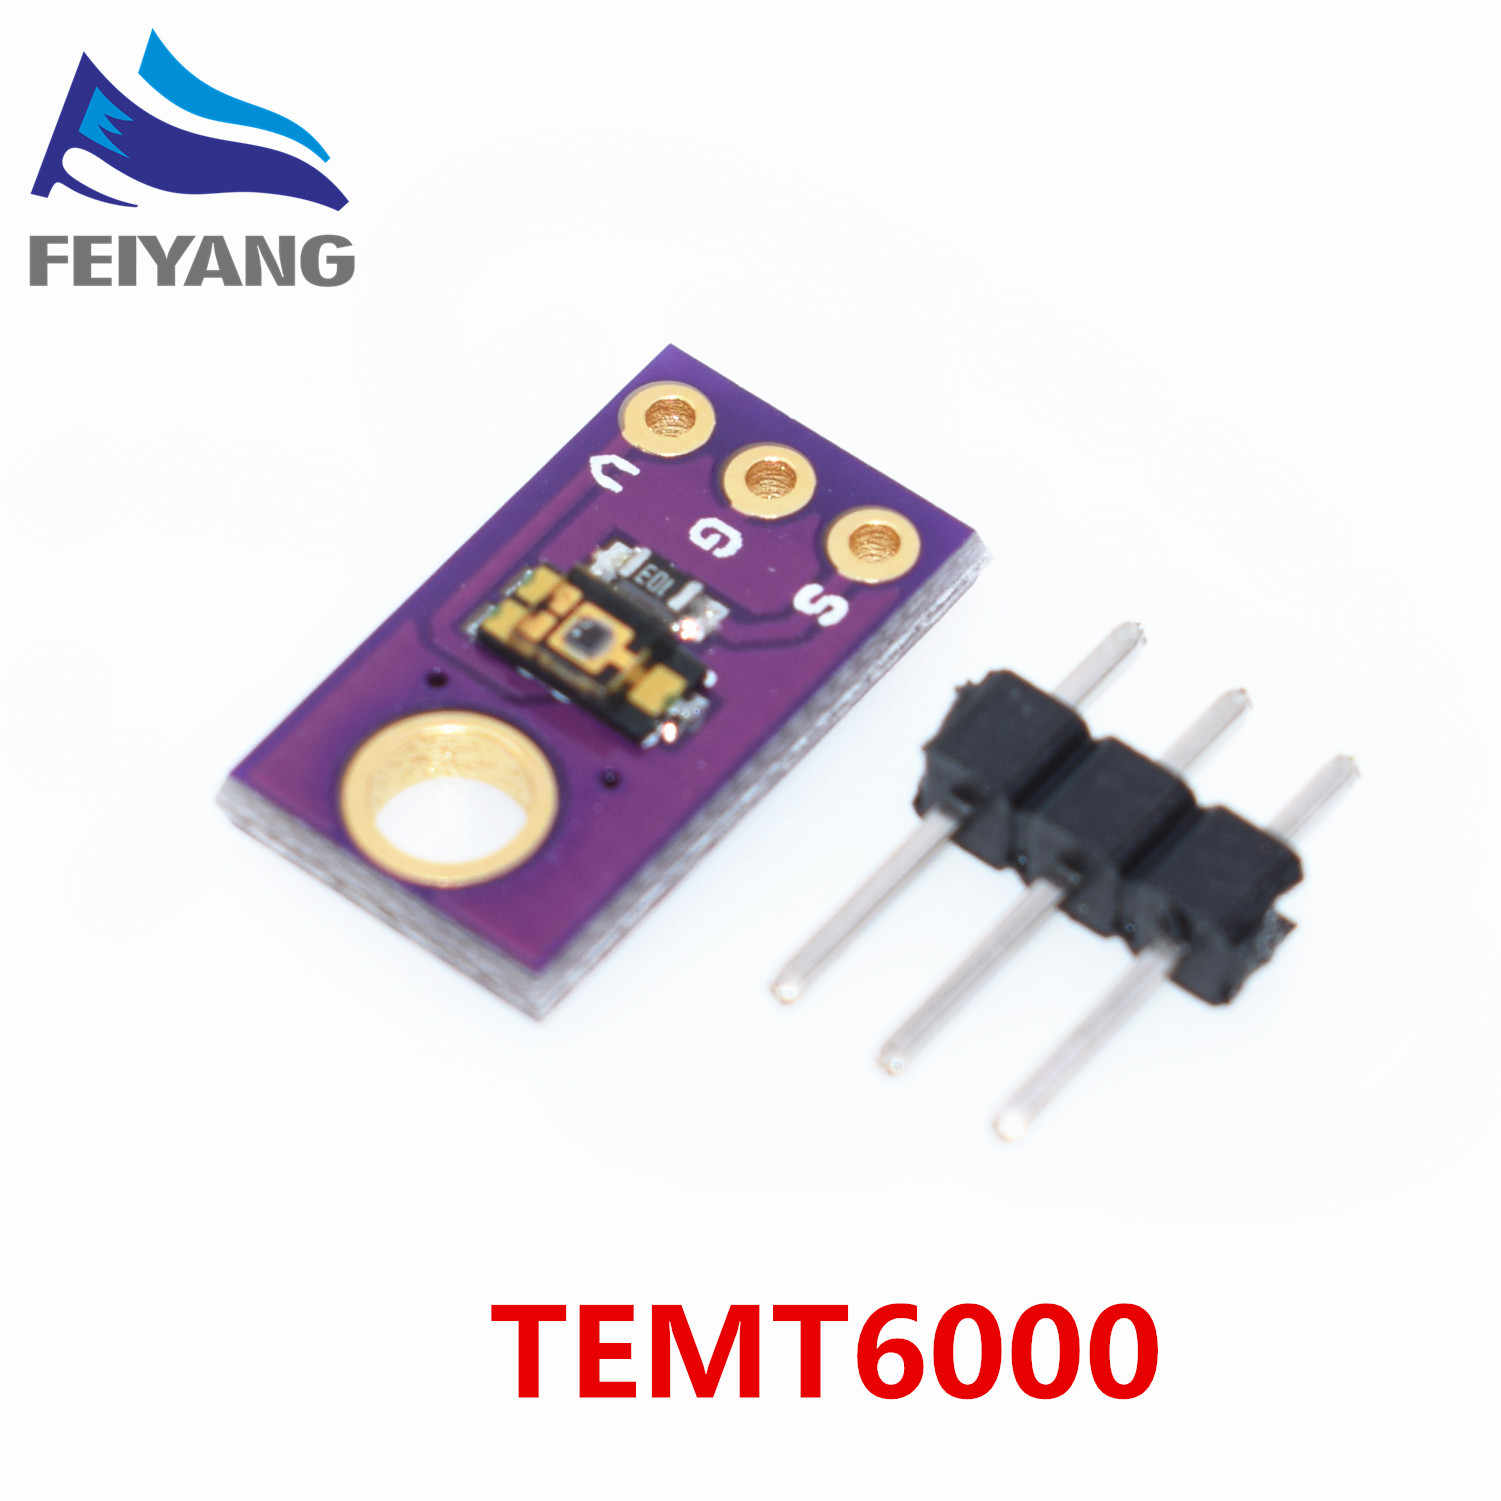 TEMT6000 Light Sensor Professional TEMT6000 Light Sensor Module